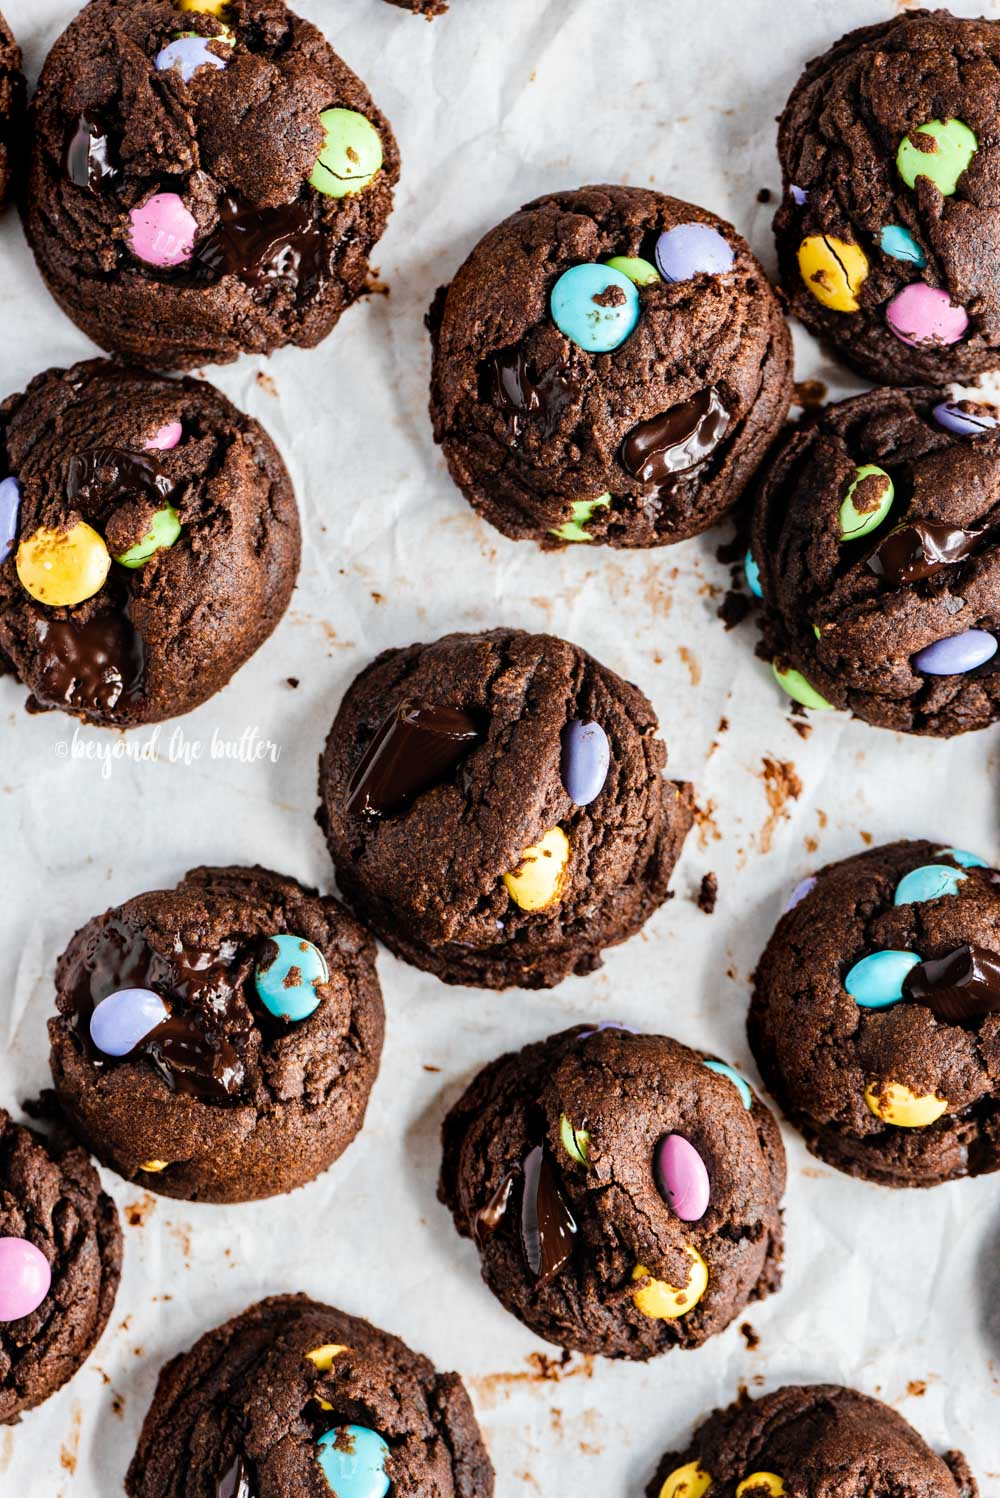 Overhead image of scattered double chocolate m&m cookies | All Images © Beyond the Butter™